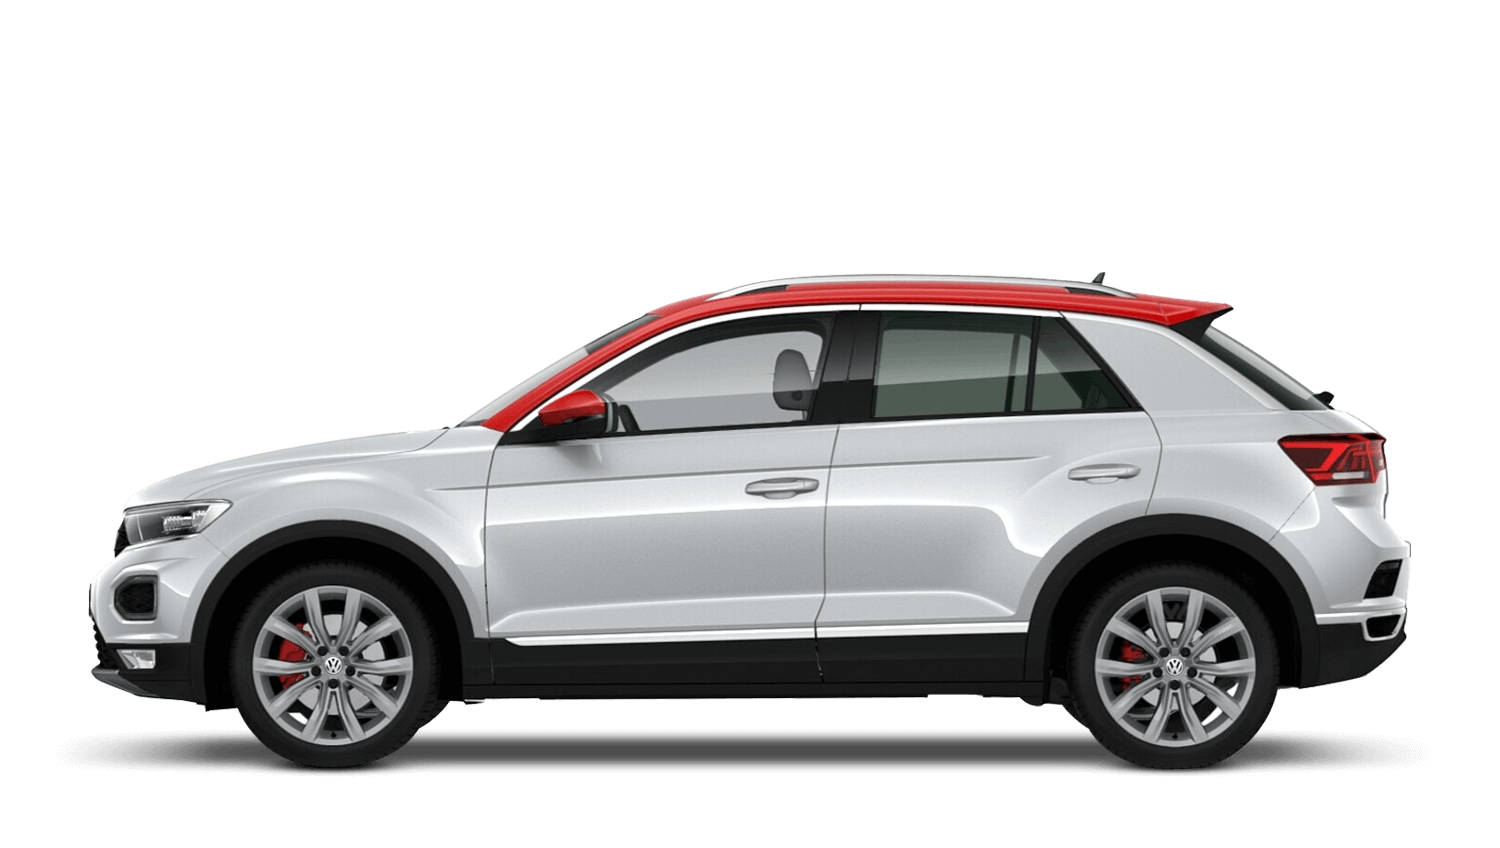 White Silver with Flash Red Roof (Metallic / Pearl) Volkswagen T Roc